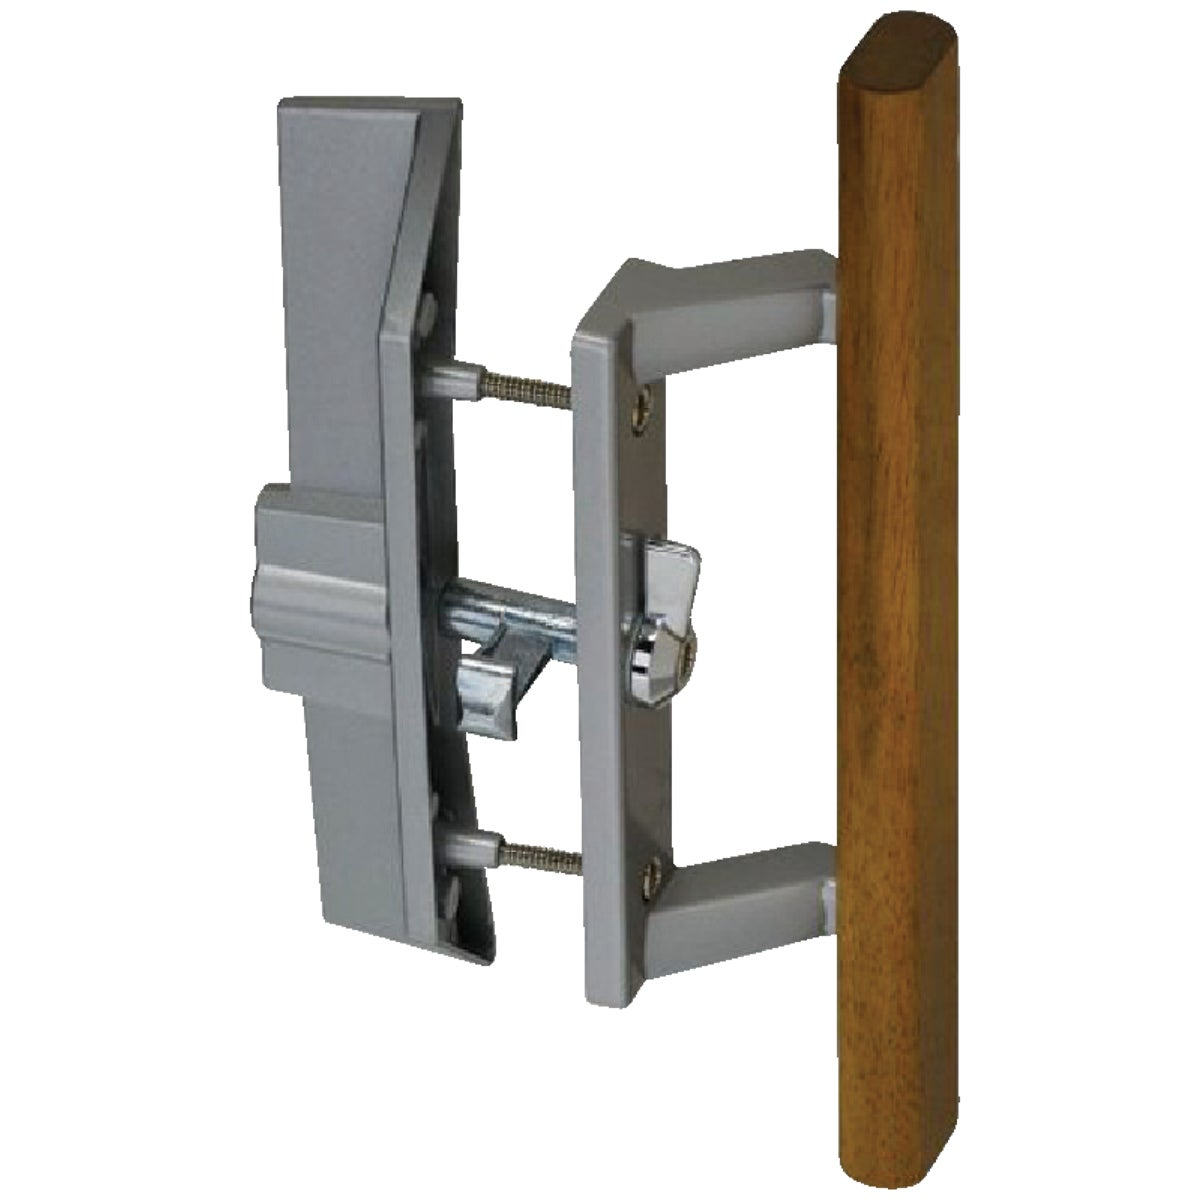 OAK PATIO DOOR LATCH - VK1104 by Hampton Prod Intl